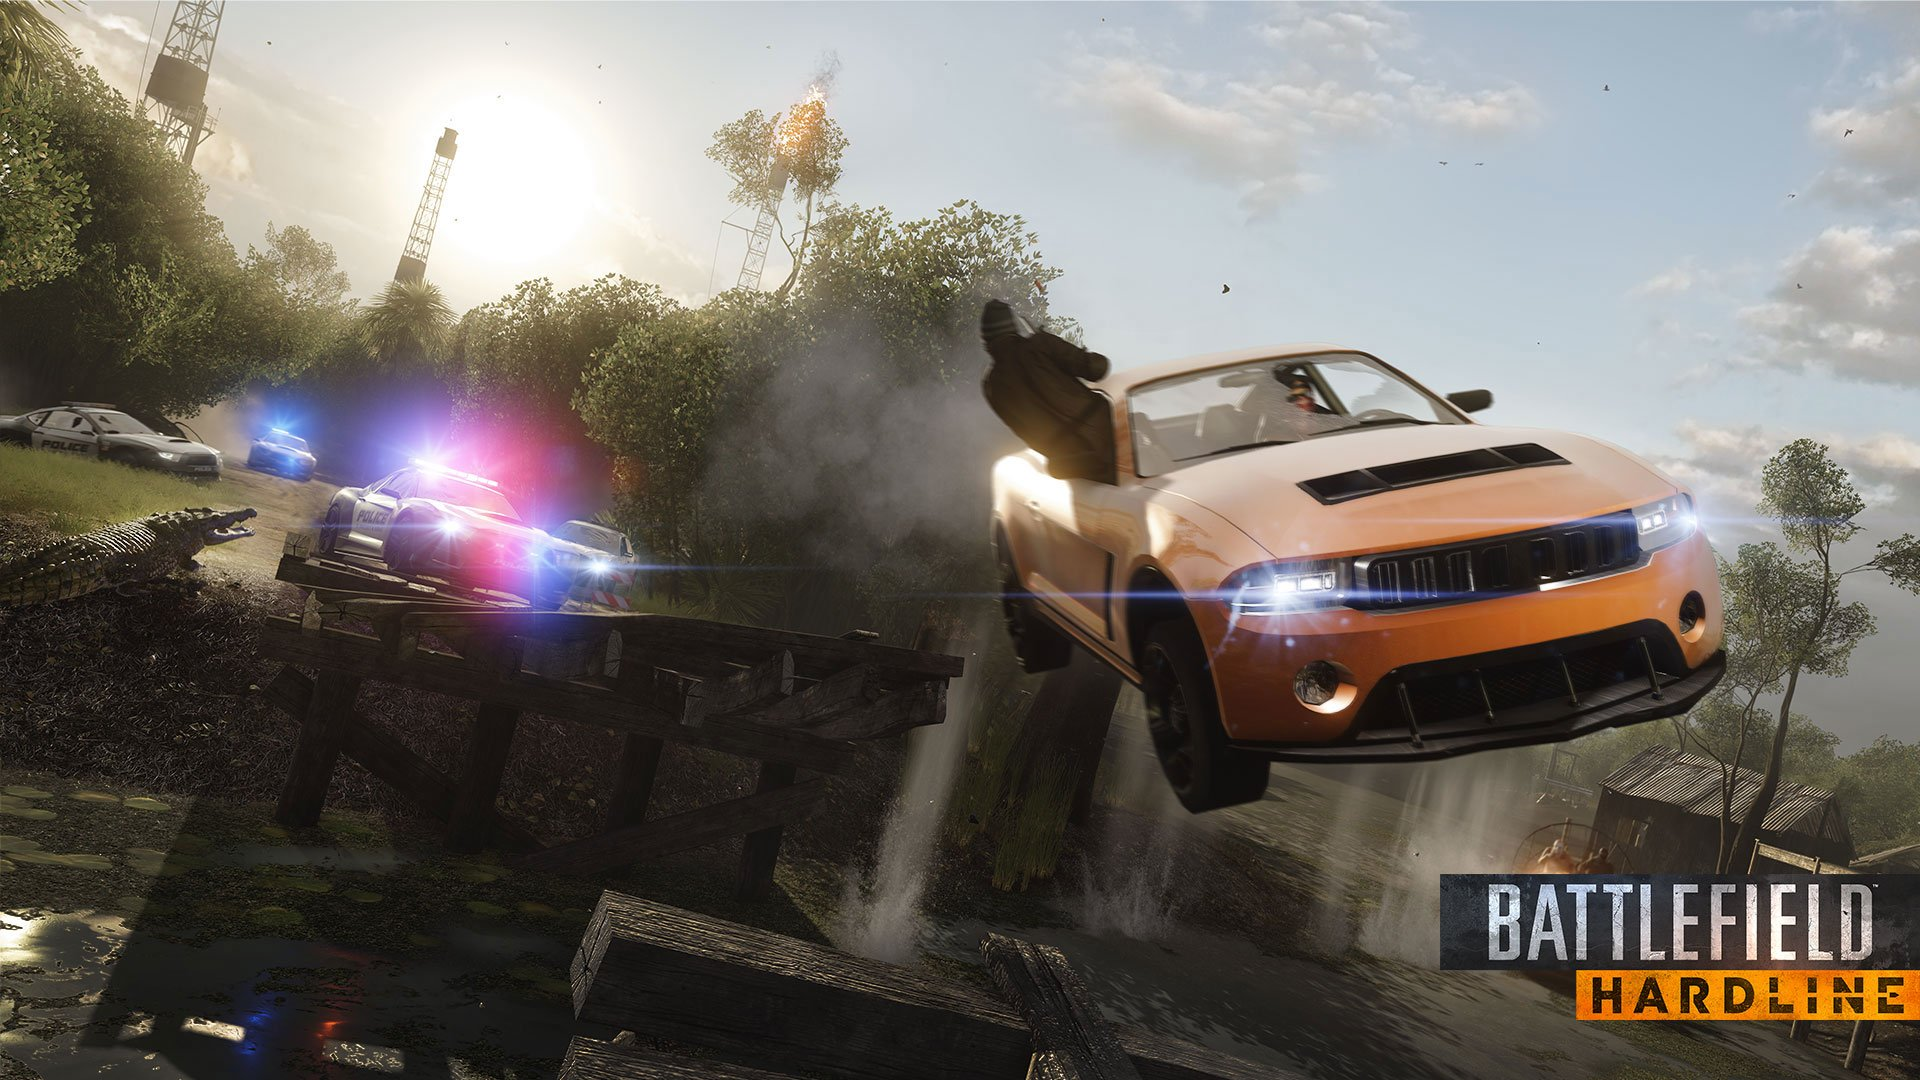 Video Game - Battlefield Hardline  Battlefield Battlefield: Hardline Wallpaper